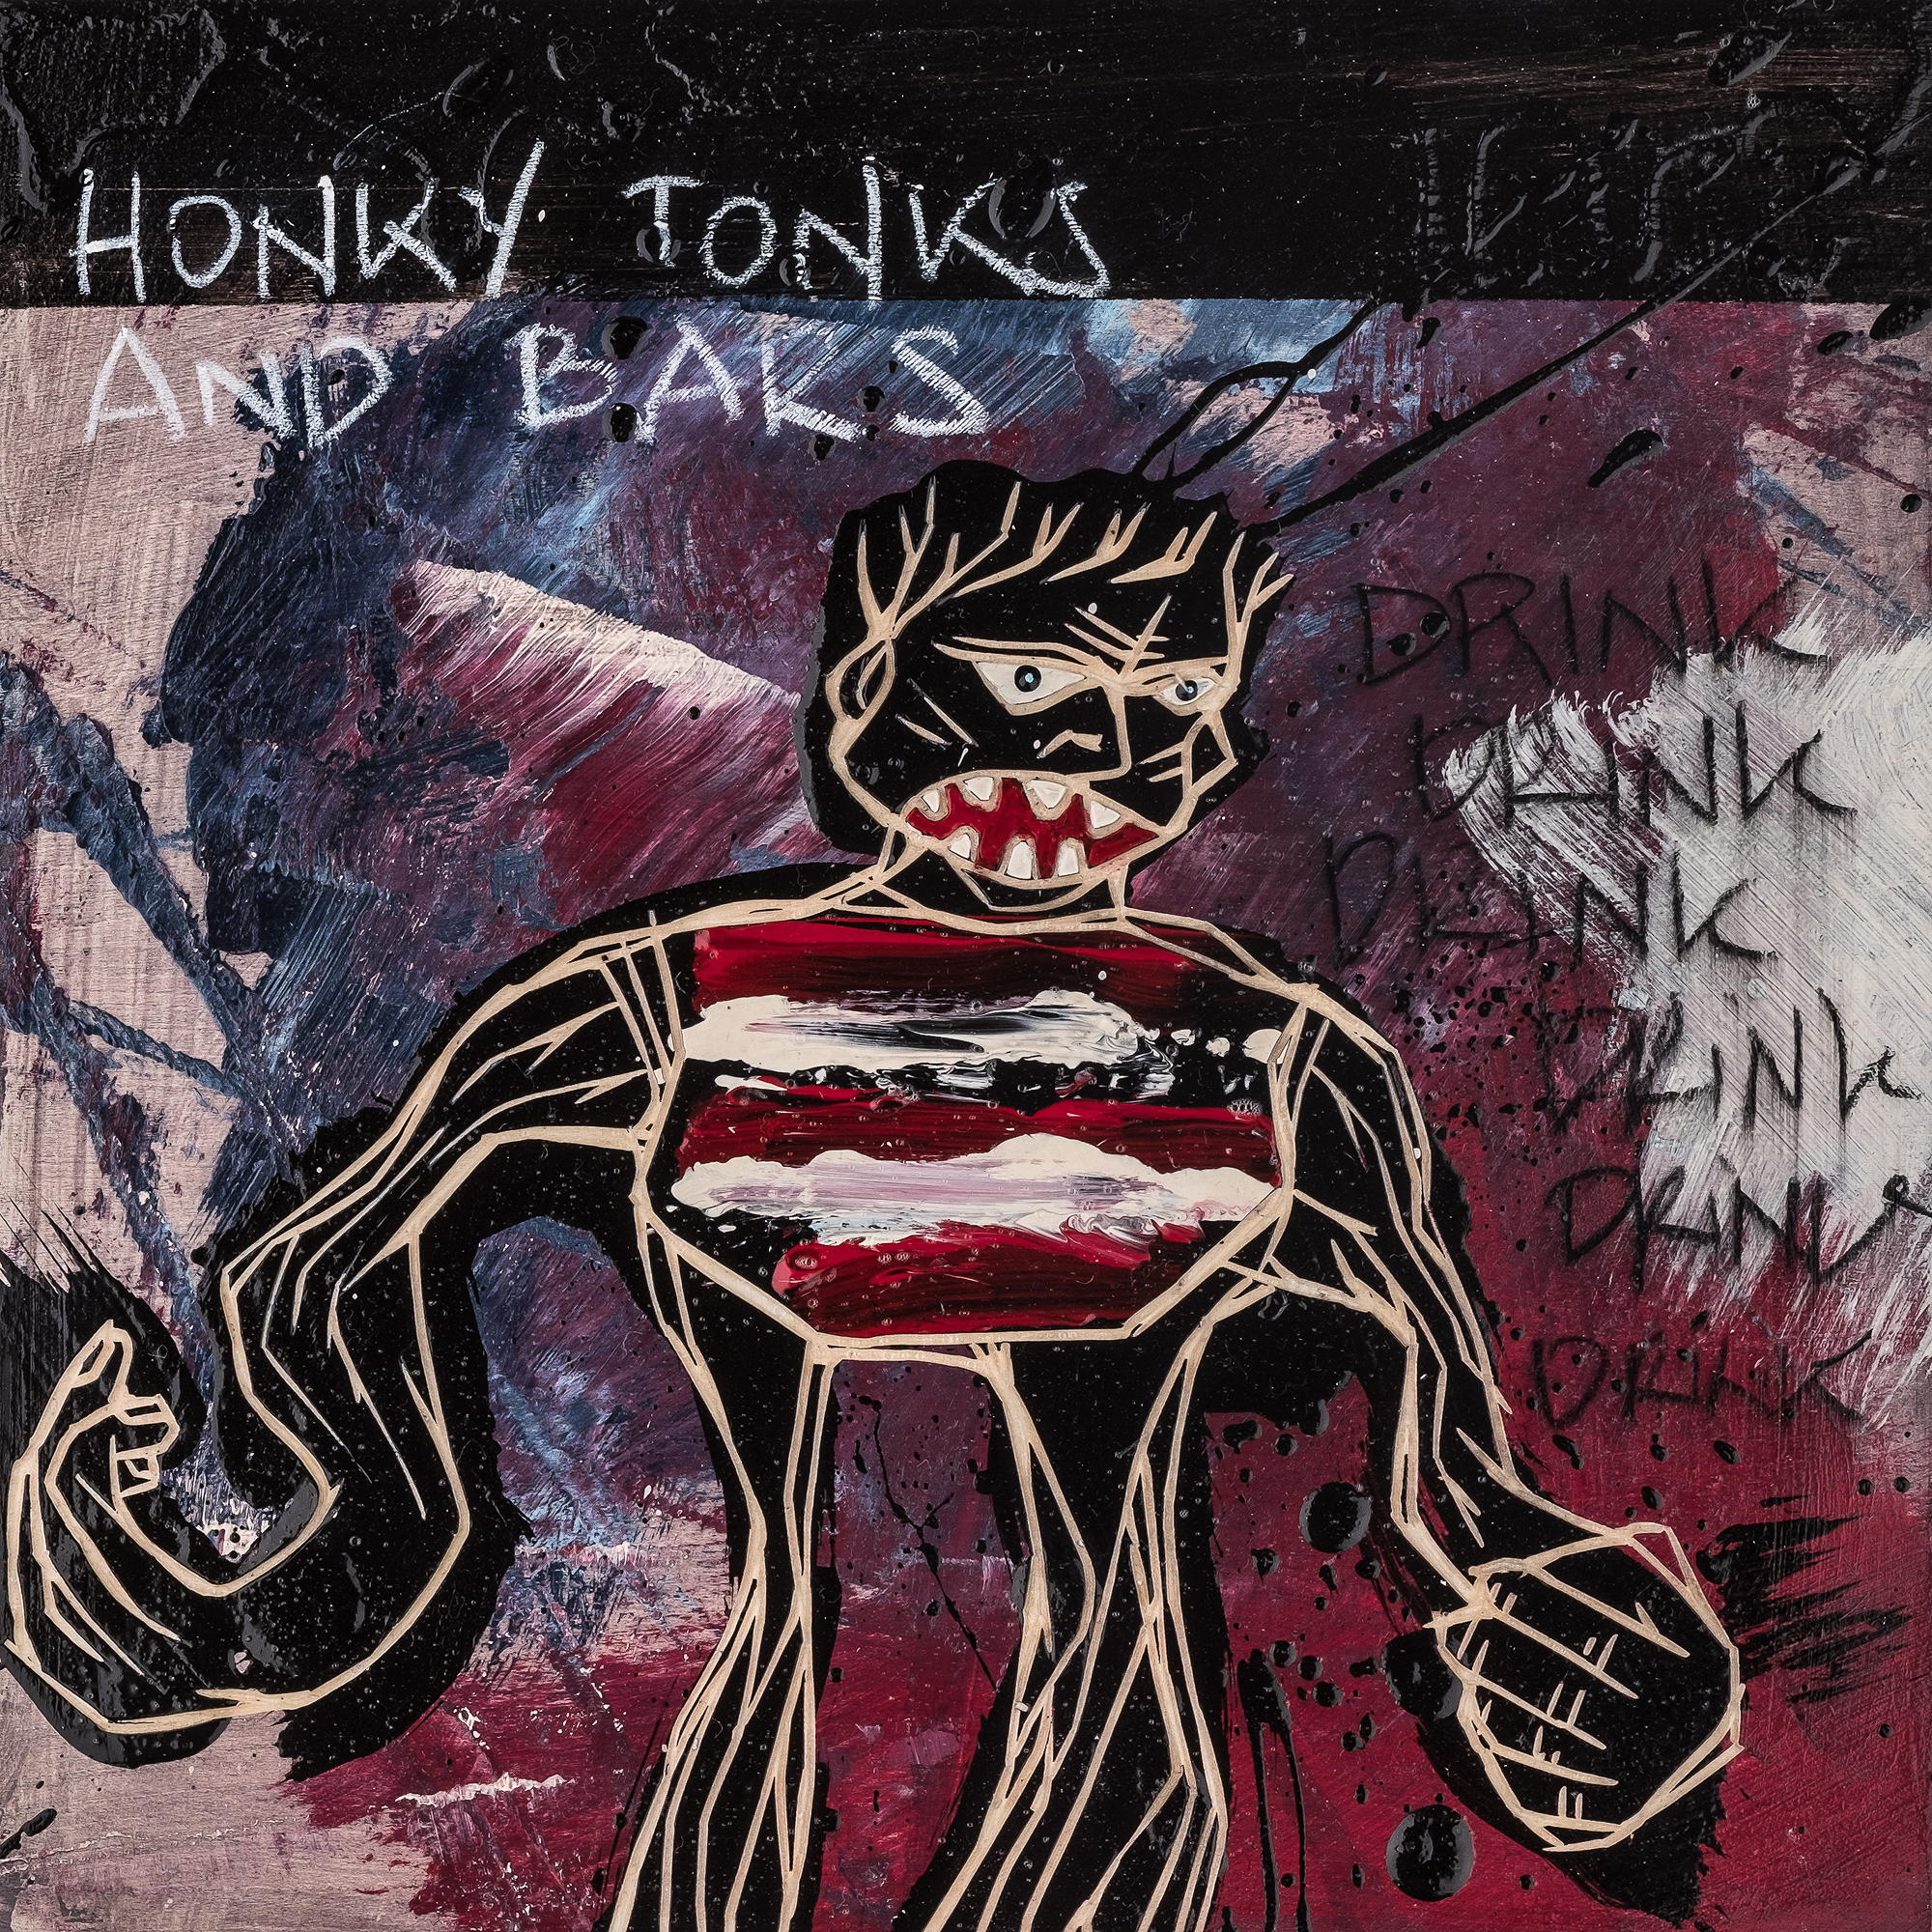 Honky Tonk And Bars / The Freedom Paintings #07 (2018)